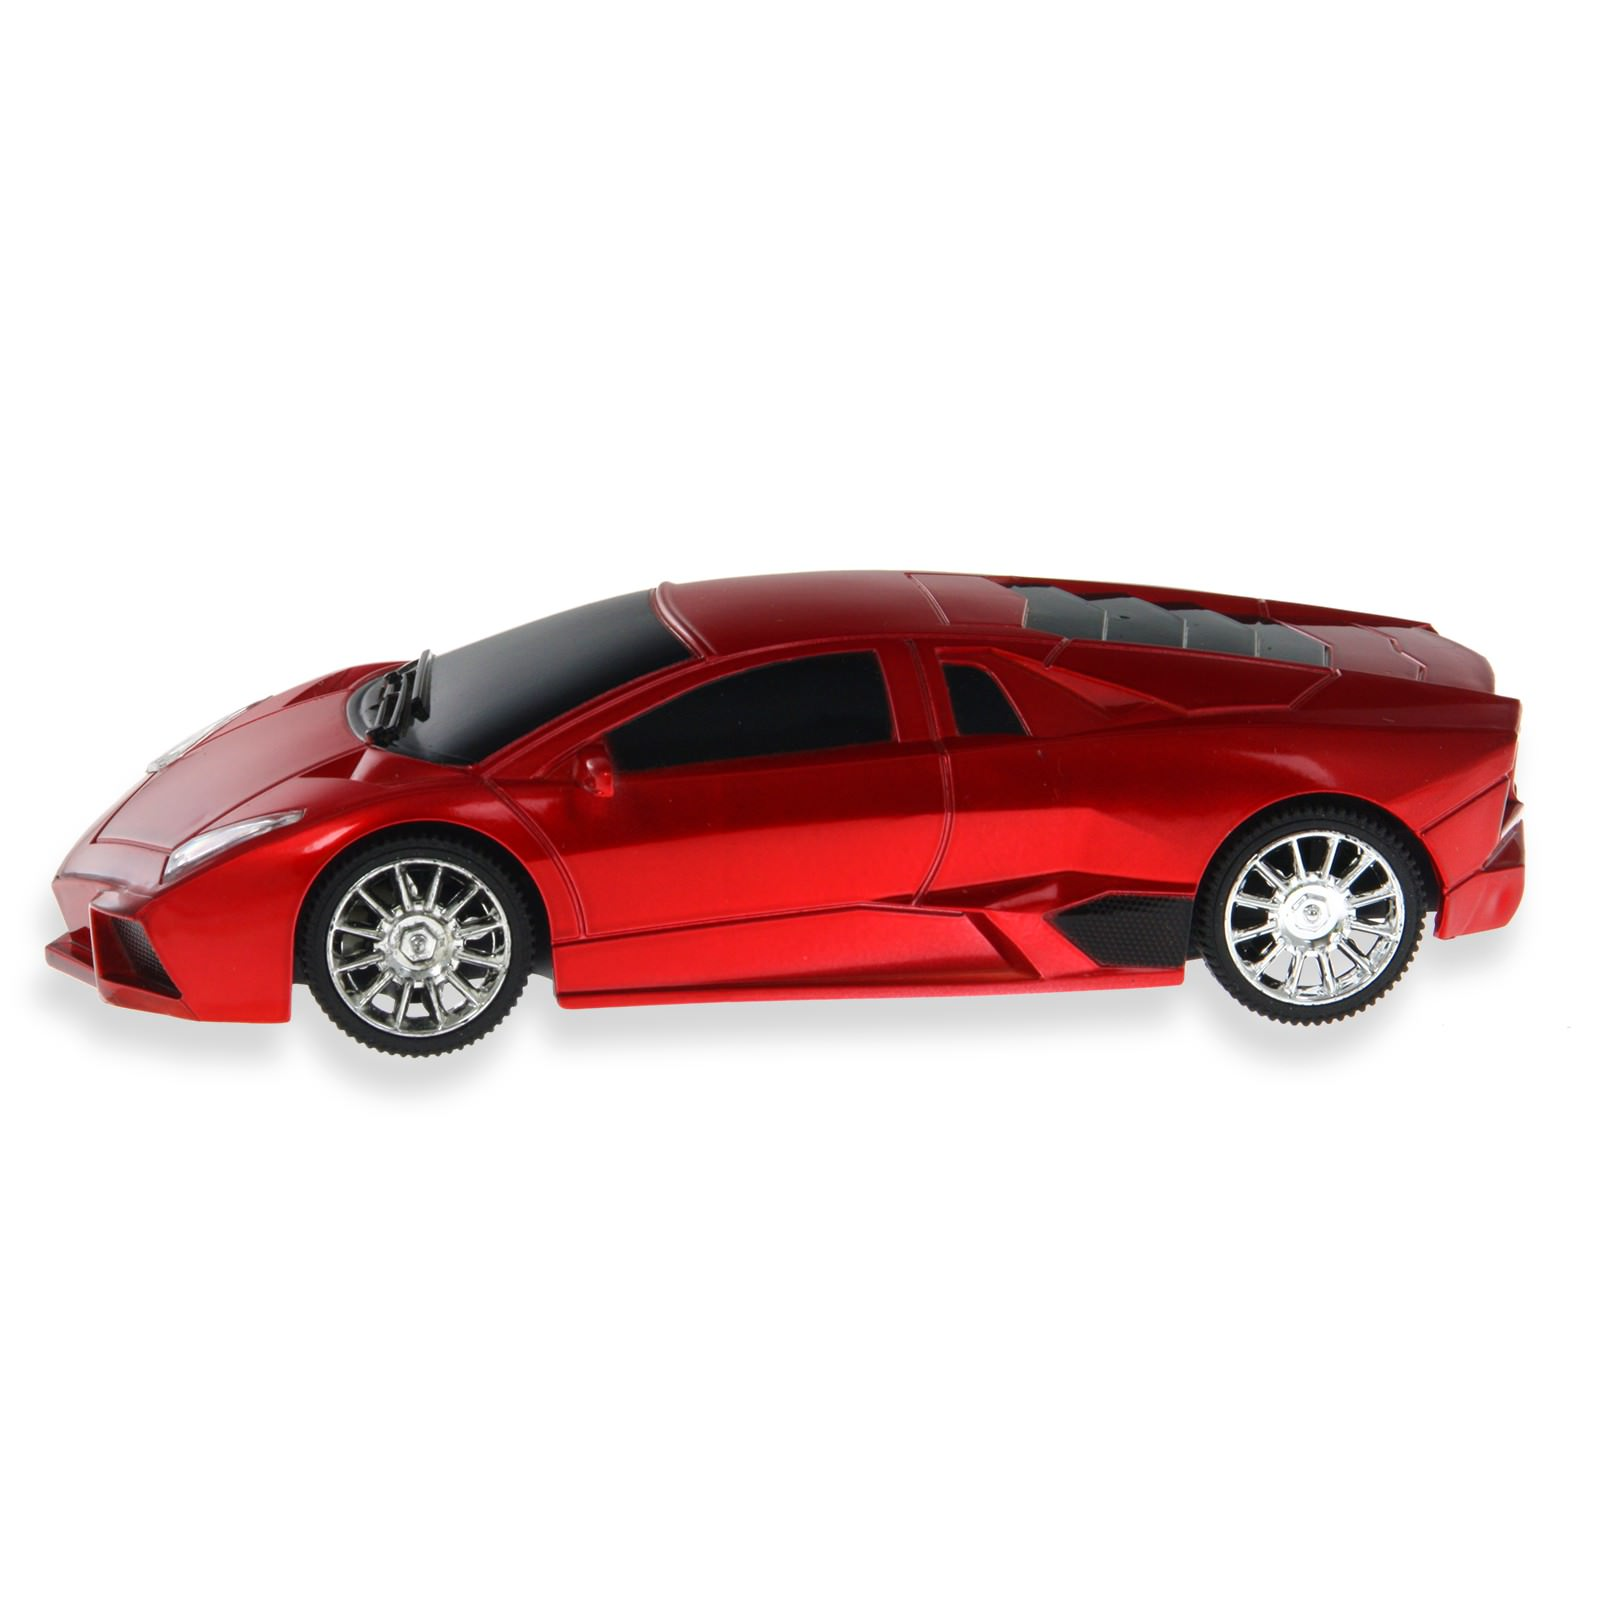 Fast Car LF08 Red Lambo 1/24 Scale RC Car At Hobby Warehouse